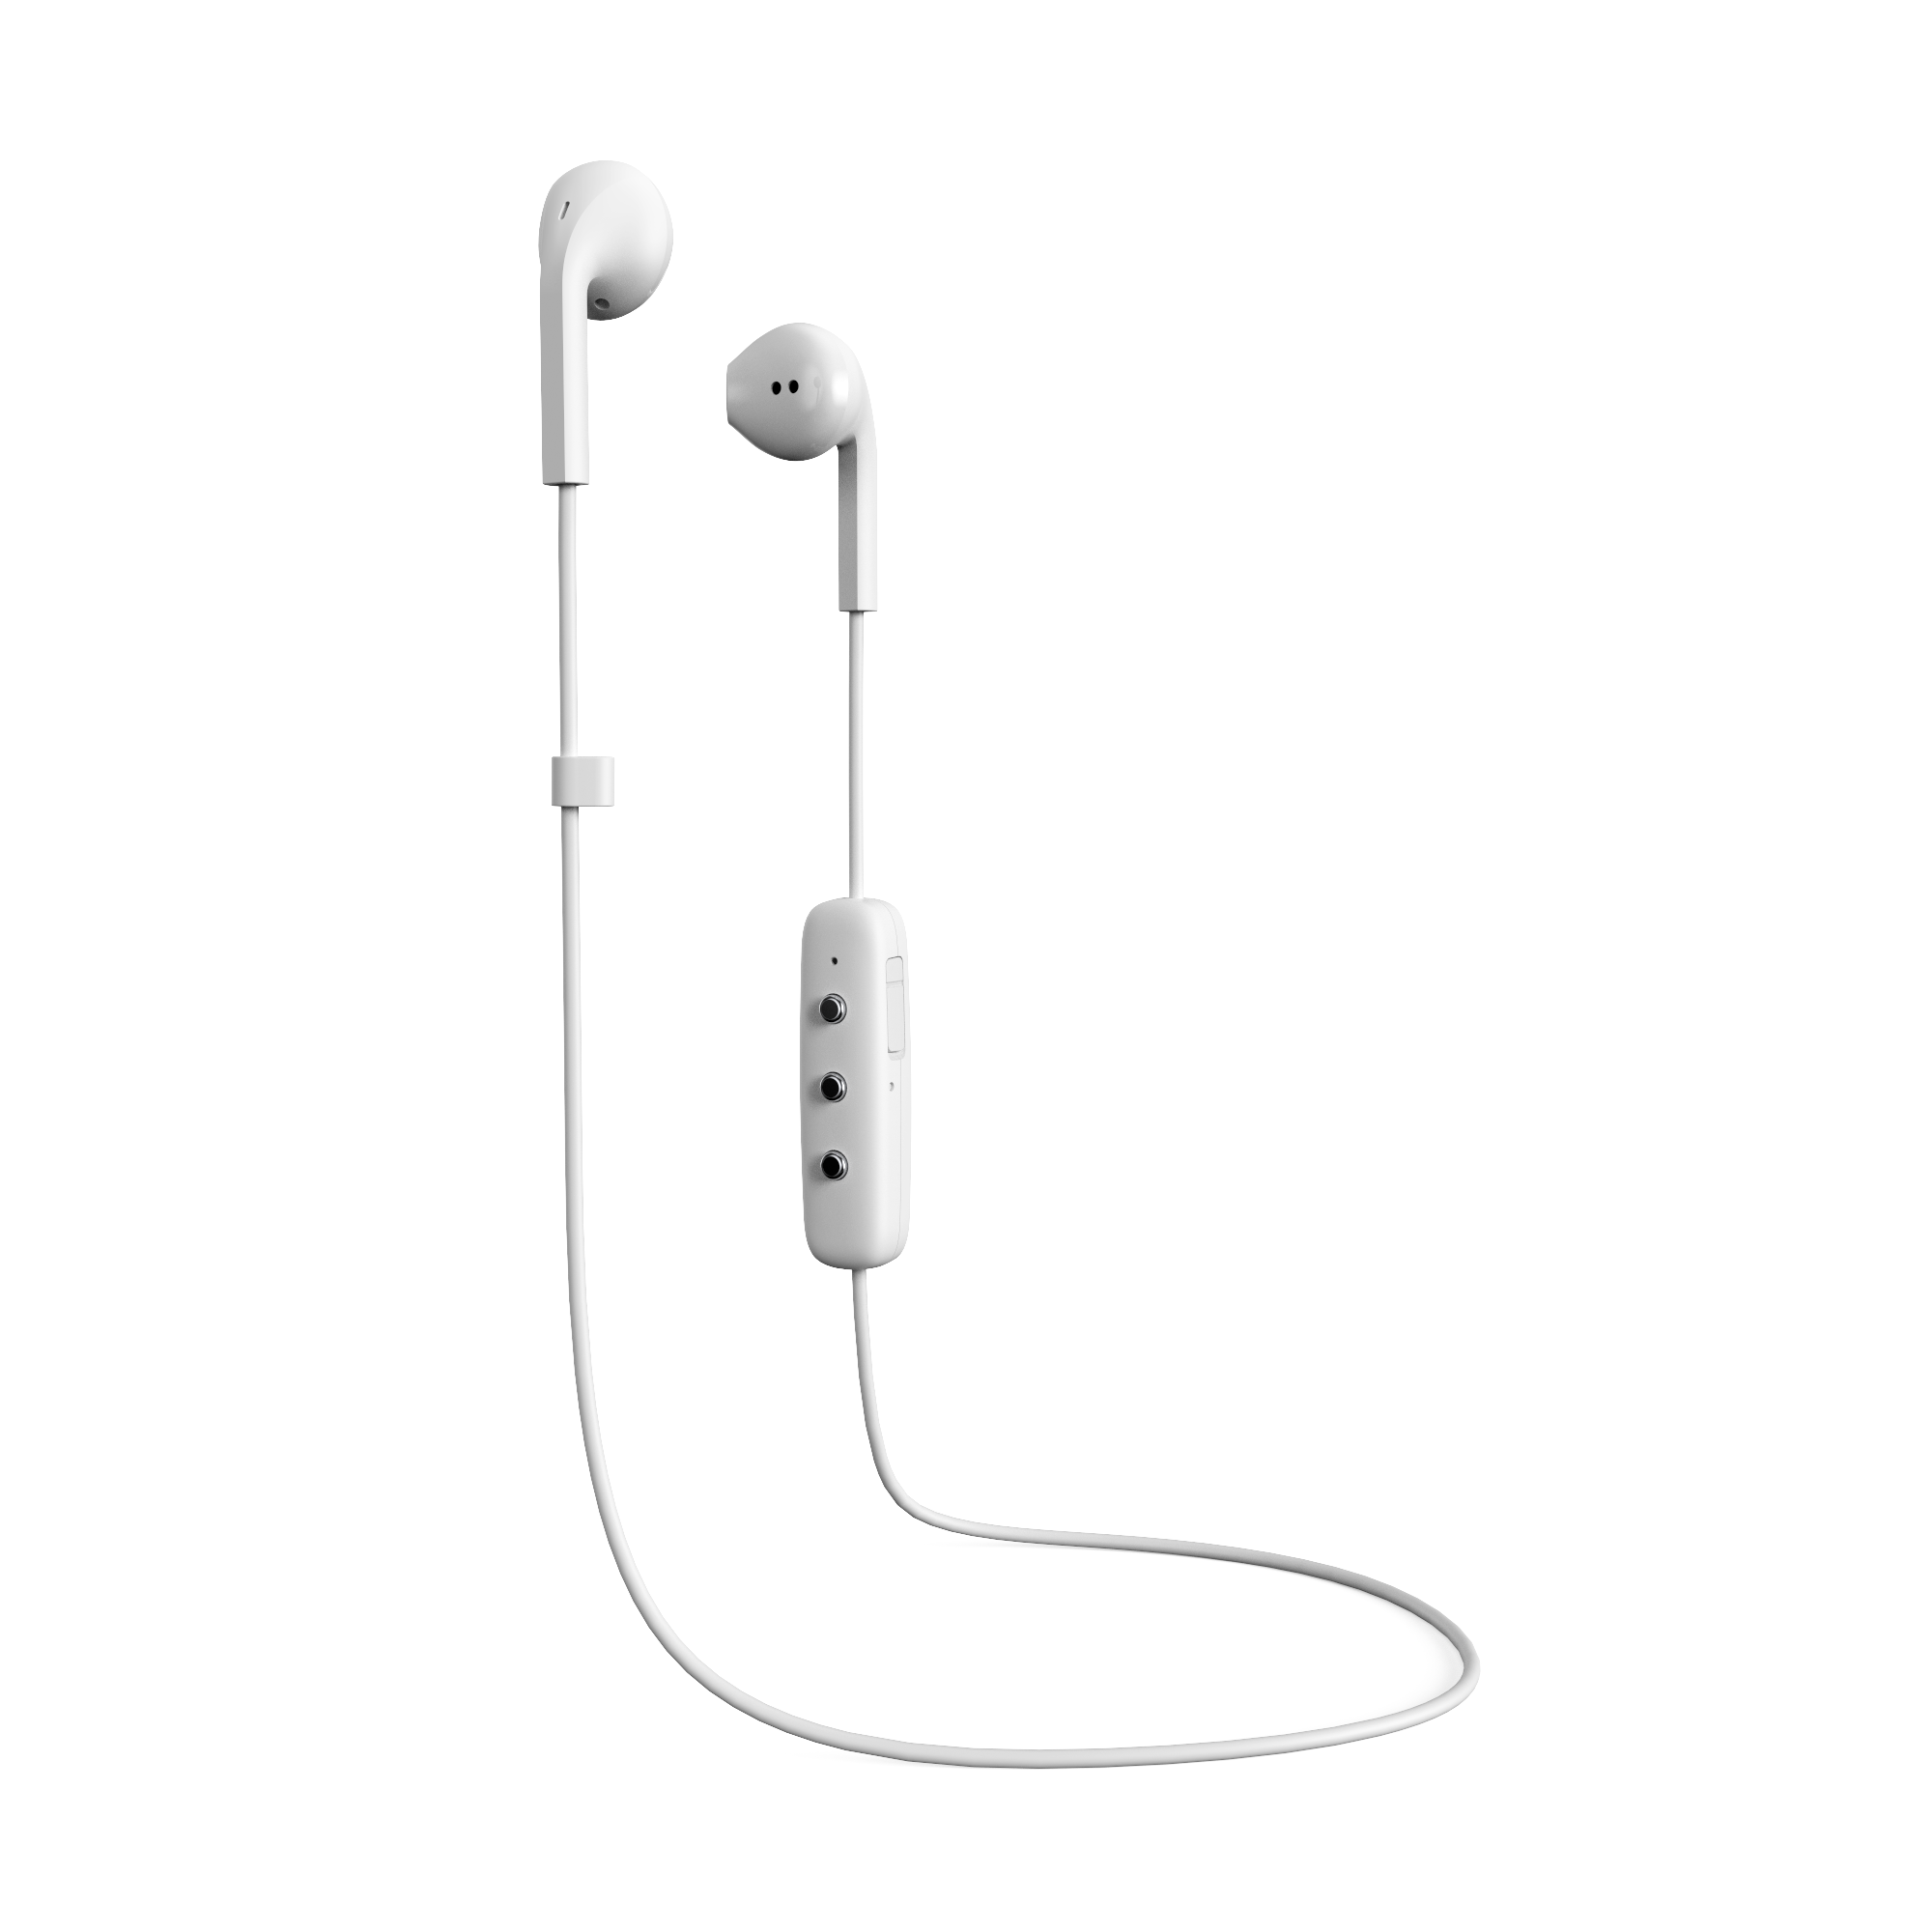 EARBUD PLUS WIRELESS